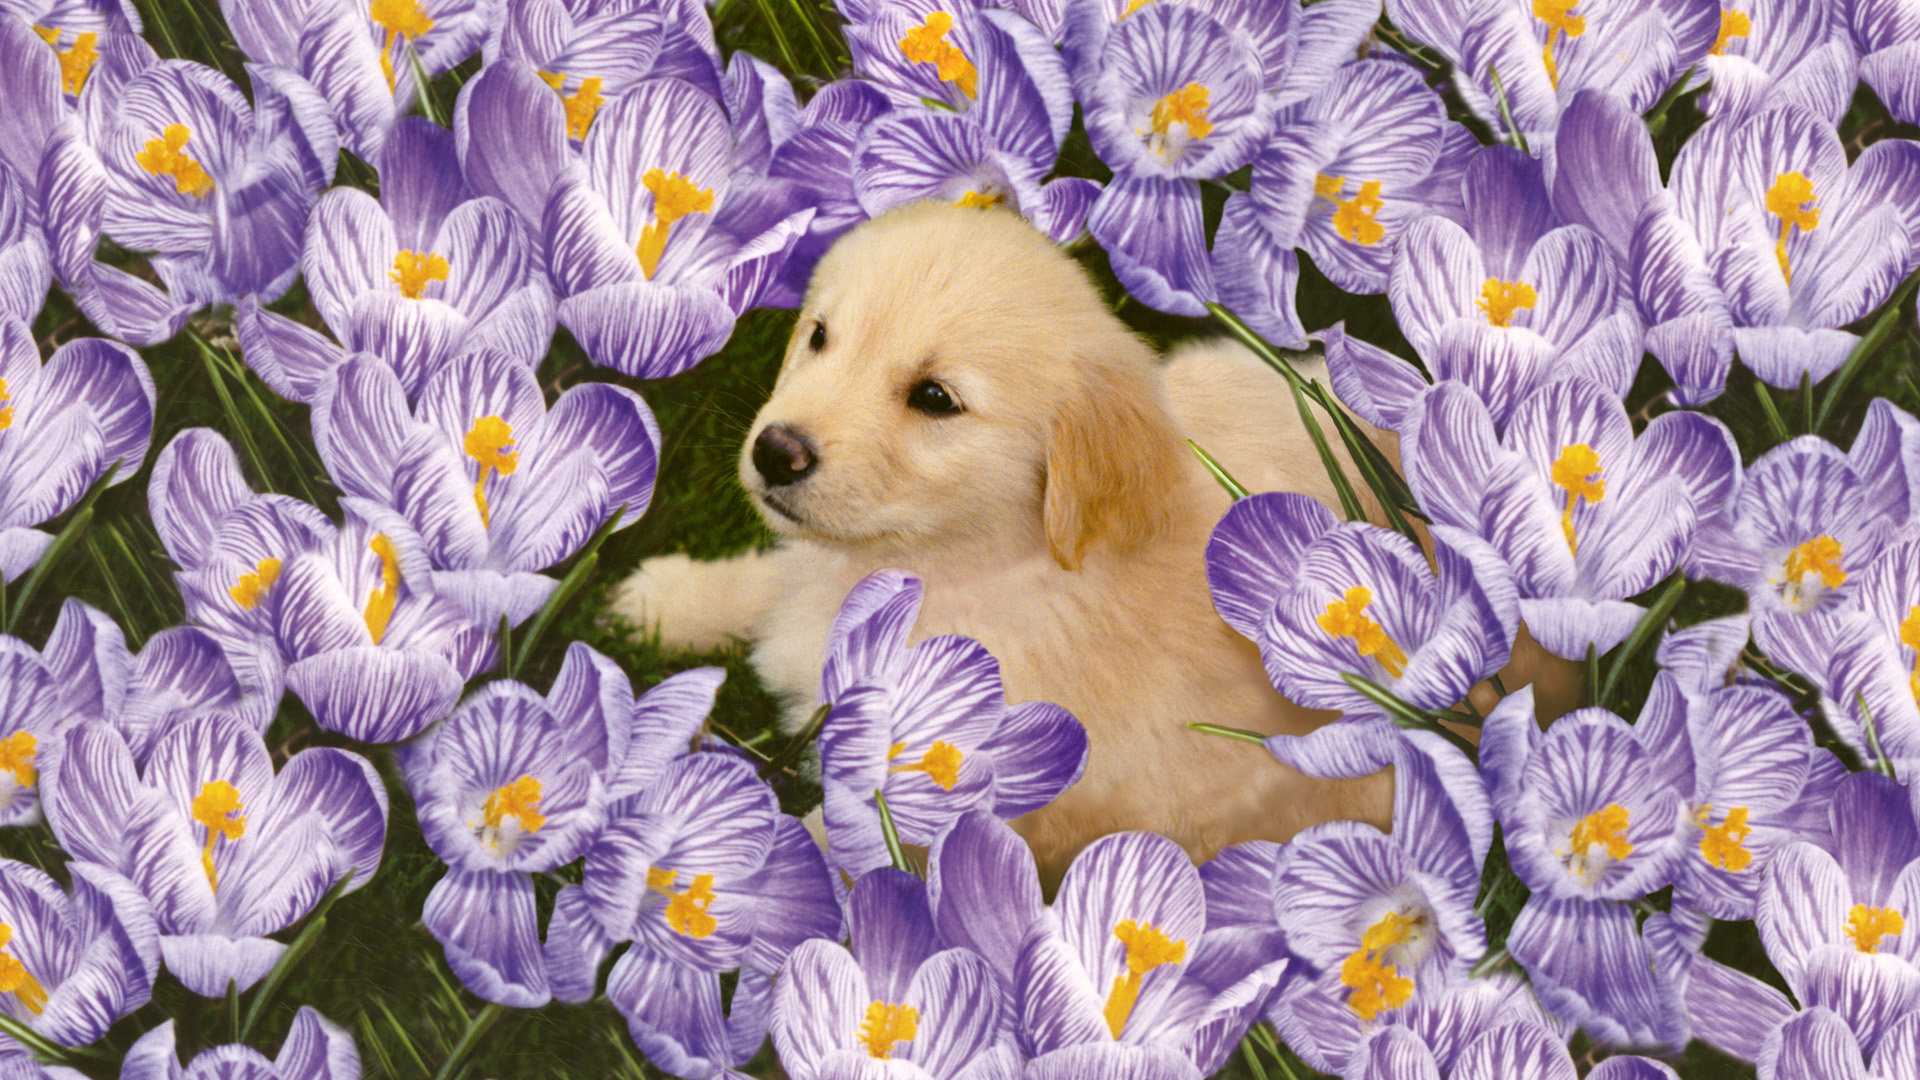 Download full hd Puppy PC background ID:46717 for free